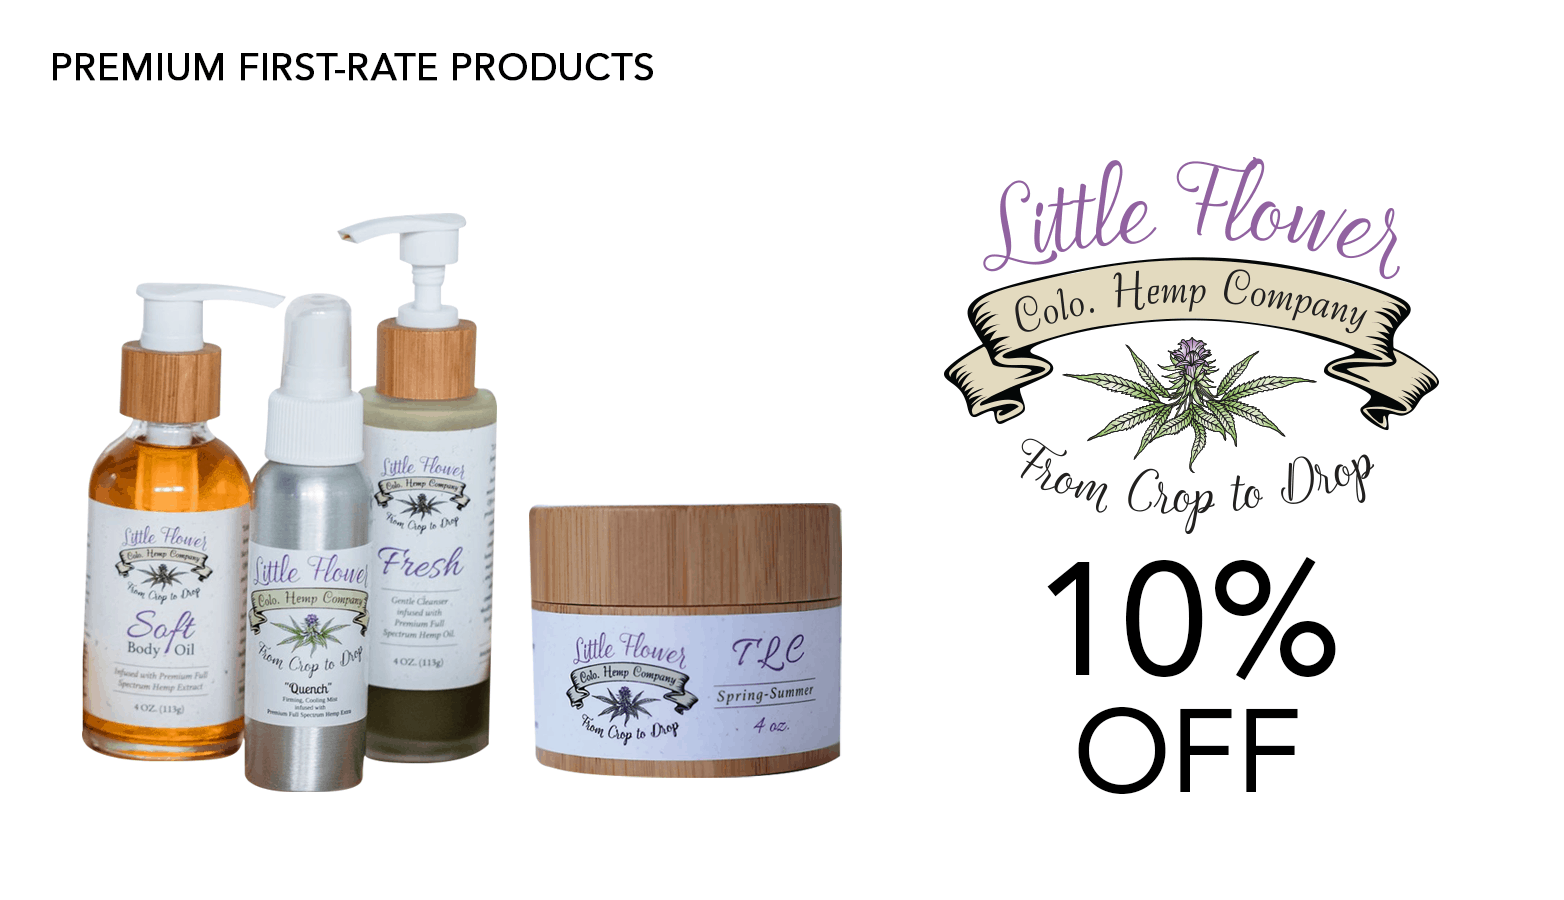 ittle Flower Hemp Company Coupon Code Website